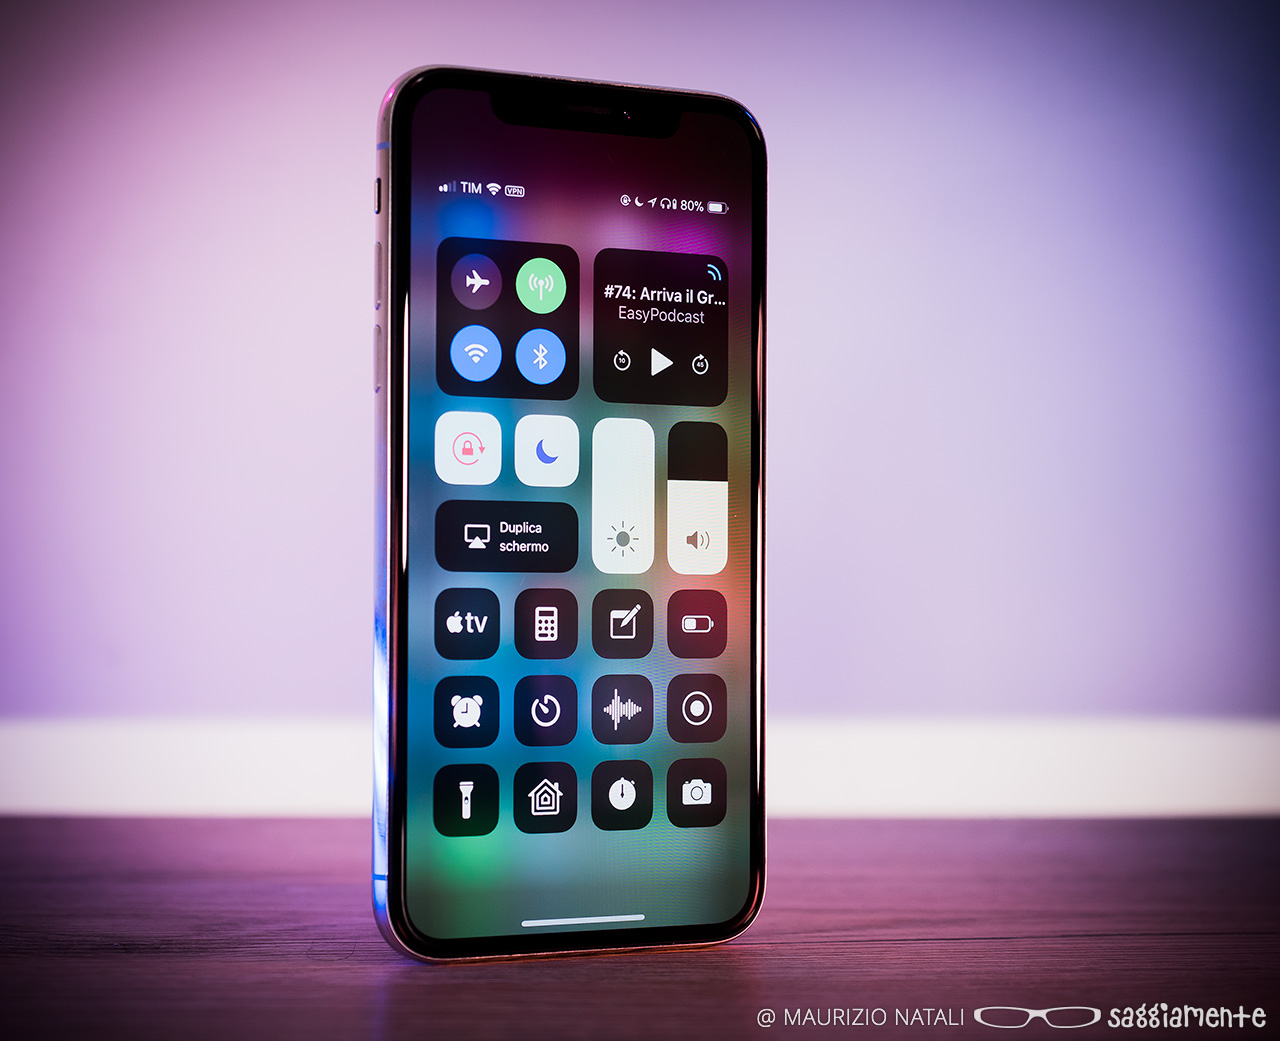 iphone-x-control-center-3